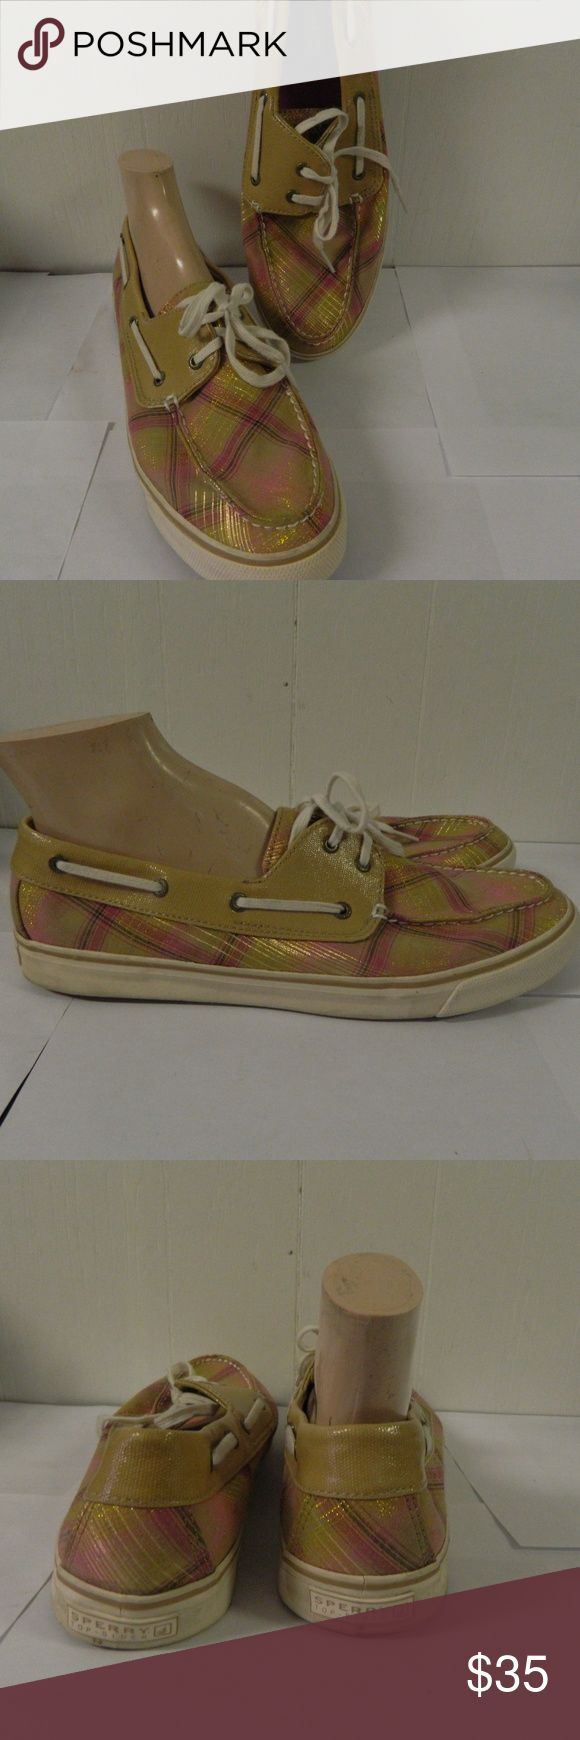 """Sperry Top Siders Plaid Beige & Pink Metallic Gold Very good clean condition.  Stated size 12M Womens.  Measure 11 1/2 """" heel to toe.  Tan and pink plaid with metallic gold thread throughout. Sperry Shoes Flats & Loafers"""